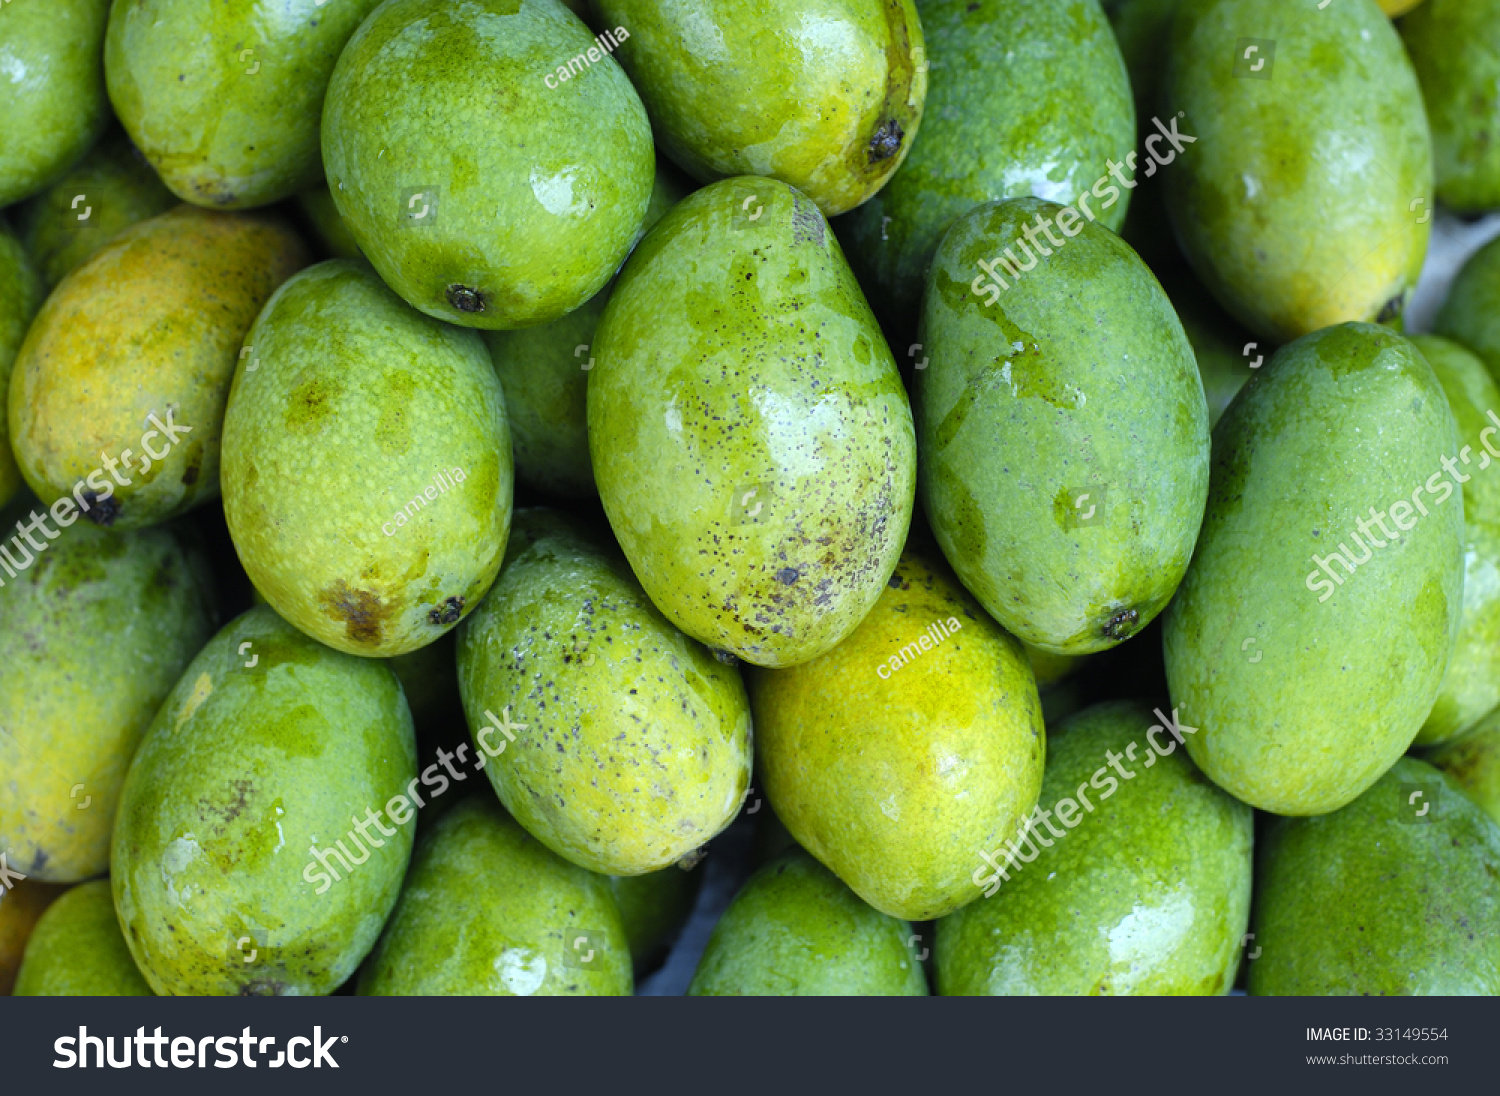 tropical fresh green mango background stock photo 33149554